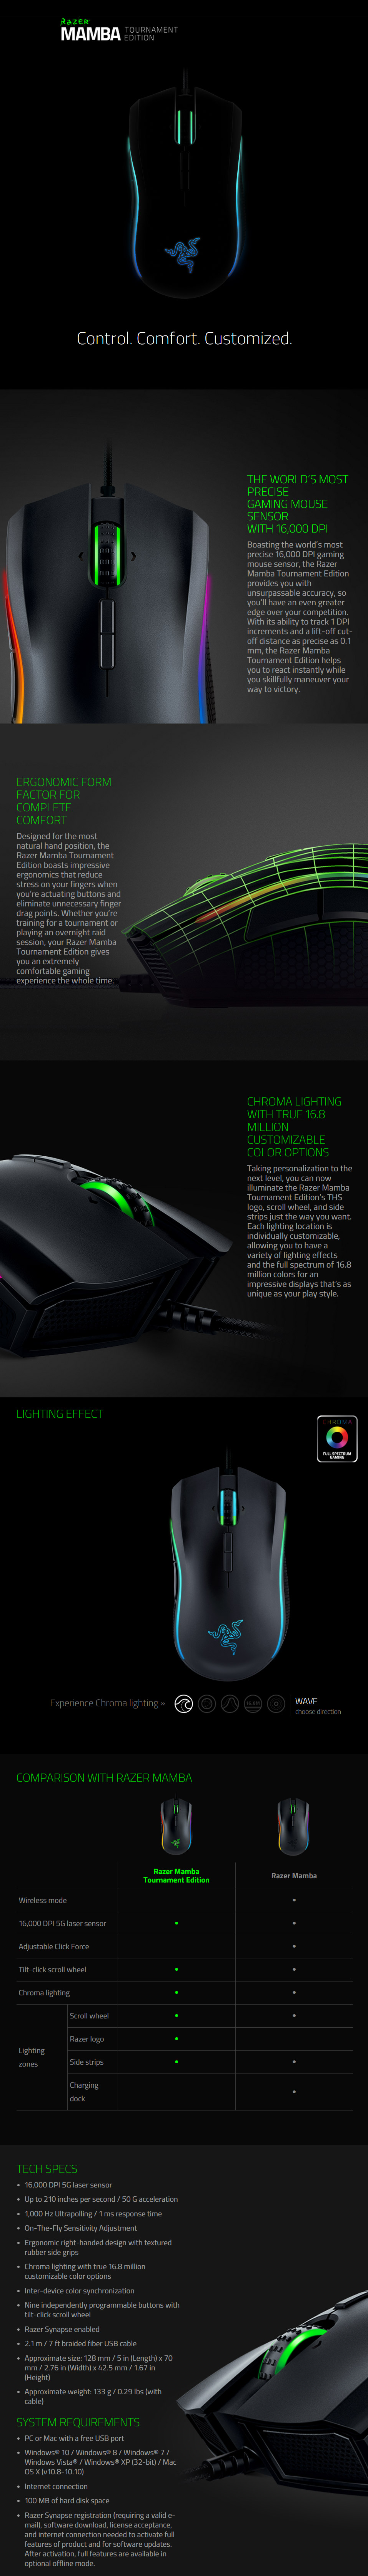 Razer Mamba Tournament Edition Gaming Mouse Game Hypermart 5g Chroma Wireless R Z 15m Subscribers Subscribe The Worlds Most Advanced